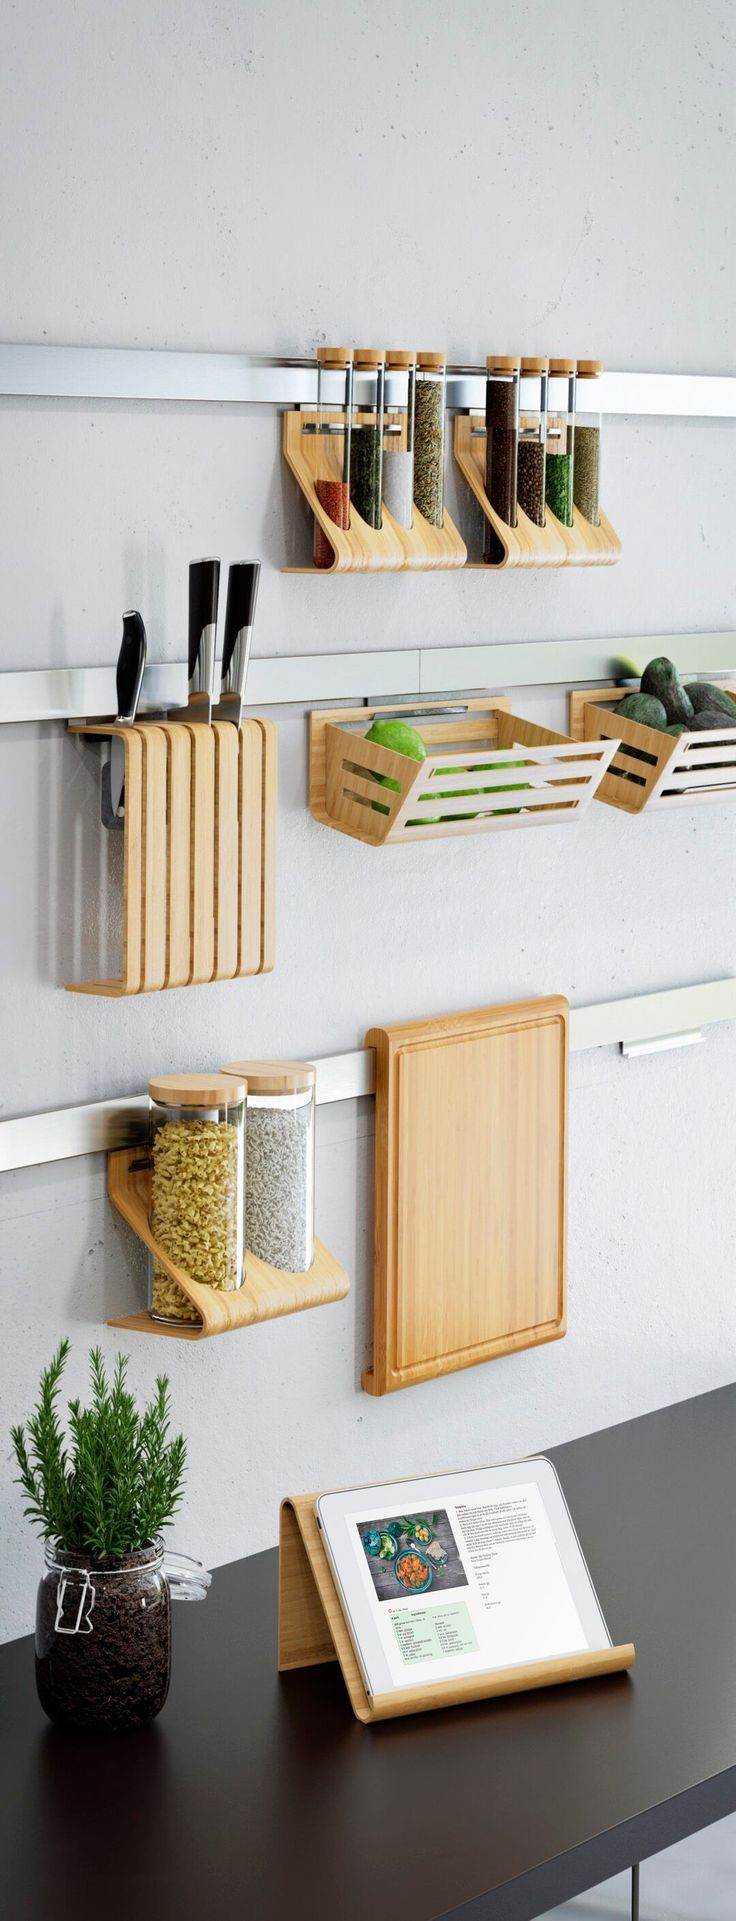 Wall Ledges for Wooden Kitchen Accessories